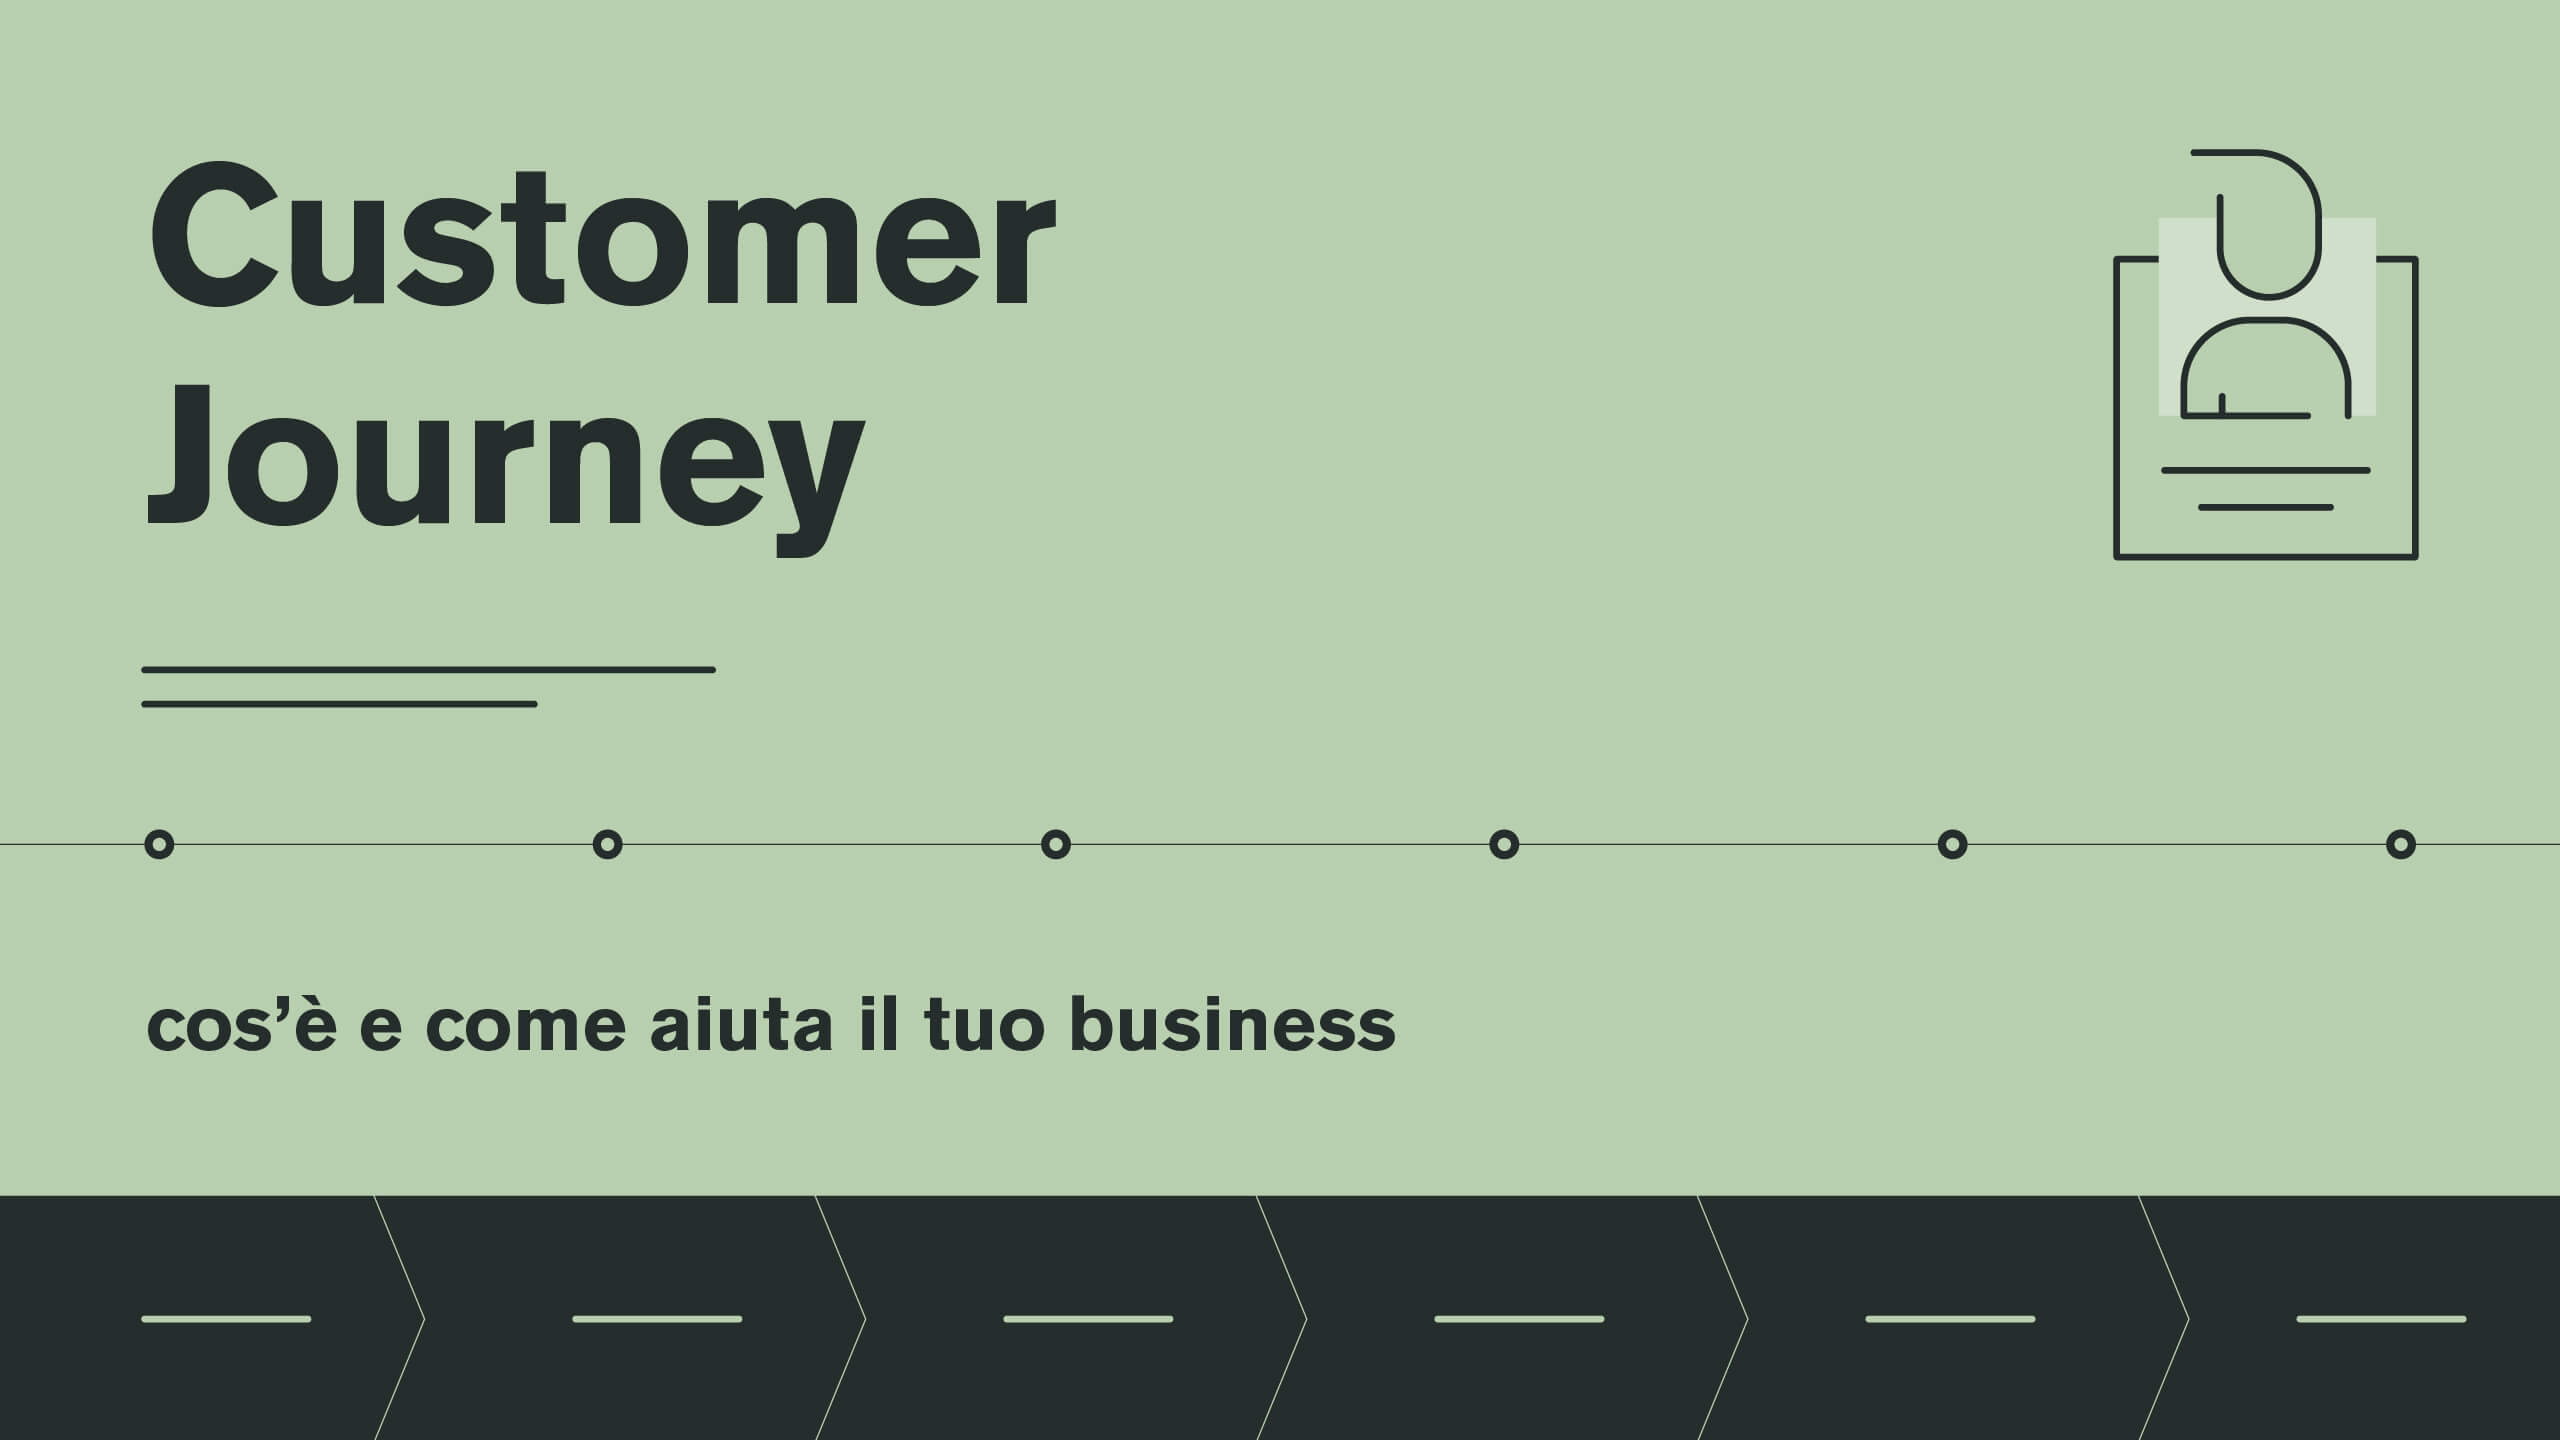 Customer journey_buyer journey cose business-1